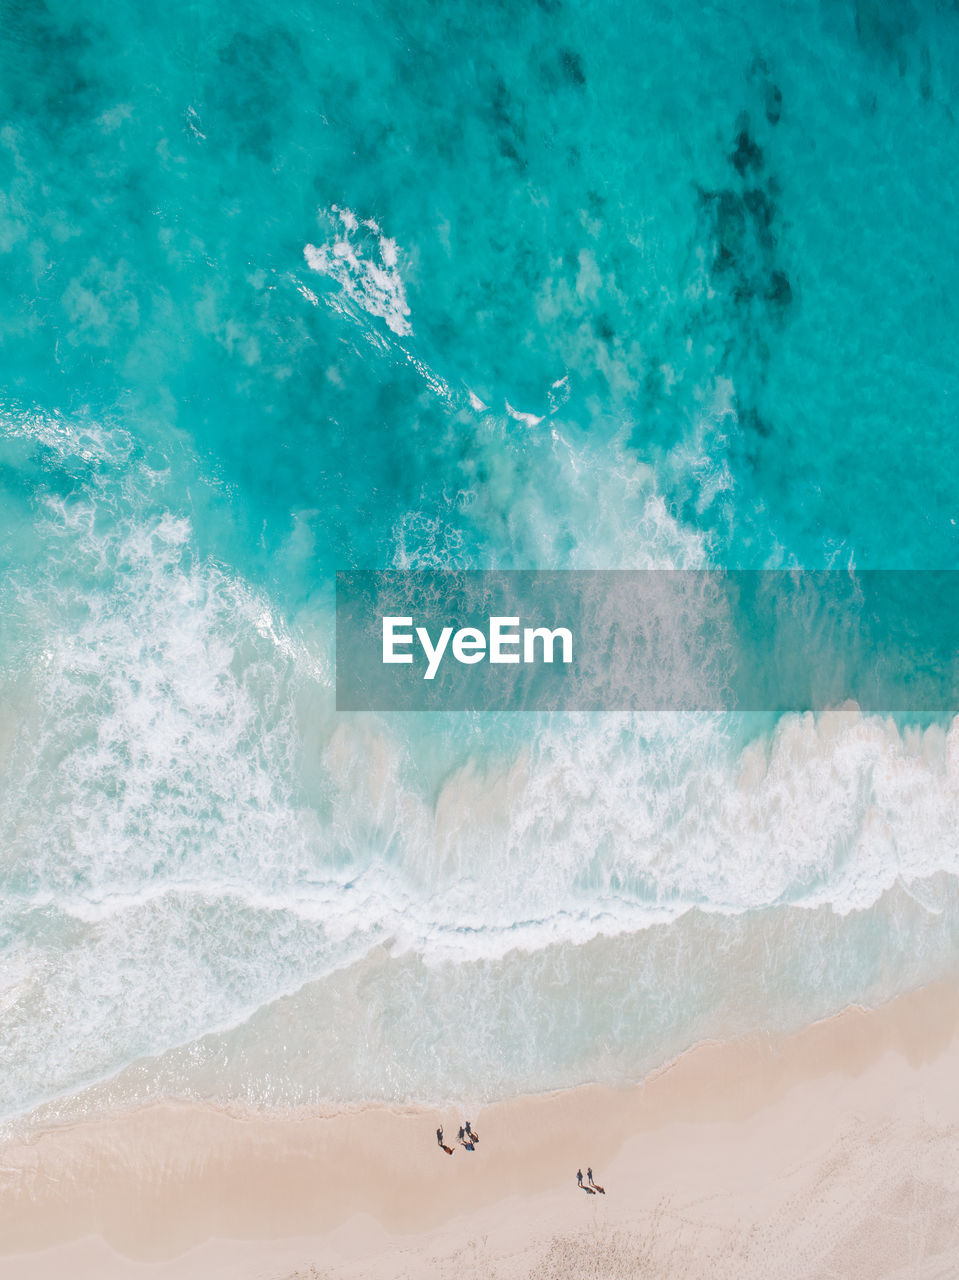 water, sea, land, motion, beauty in nature, nature, wave, sport, animal themes, beach, day, animal, aquatic sport, surfing, animals in the wild, sand, vertebrate, animal wildlife, high angle view, outdoors, turquoise colored